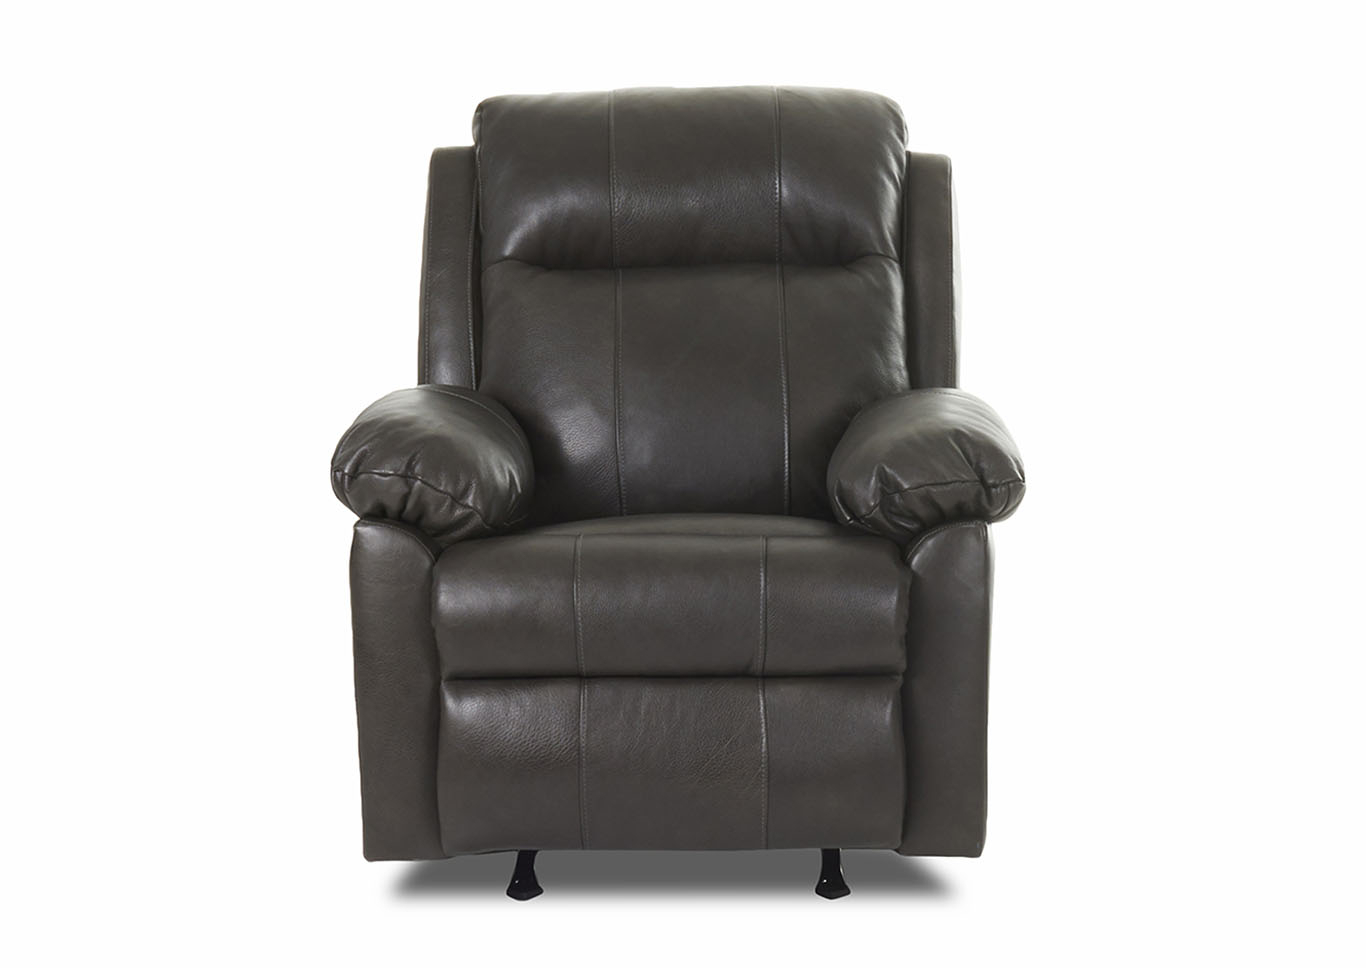 Weiss Furniture Amari Reclining Rocking Leather & Vinyl Chair Throughout Amari Swivel Accent Chairs (View 18 of 25)